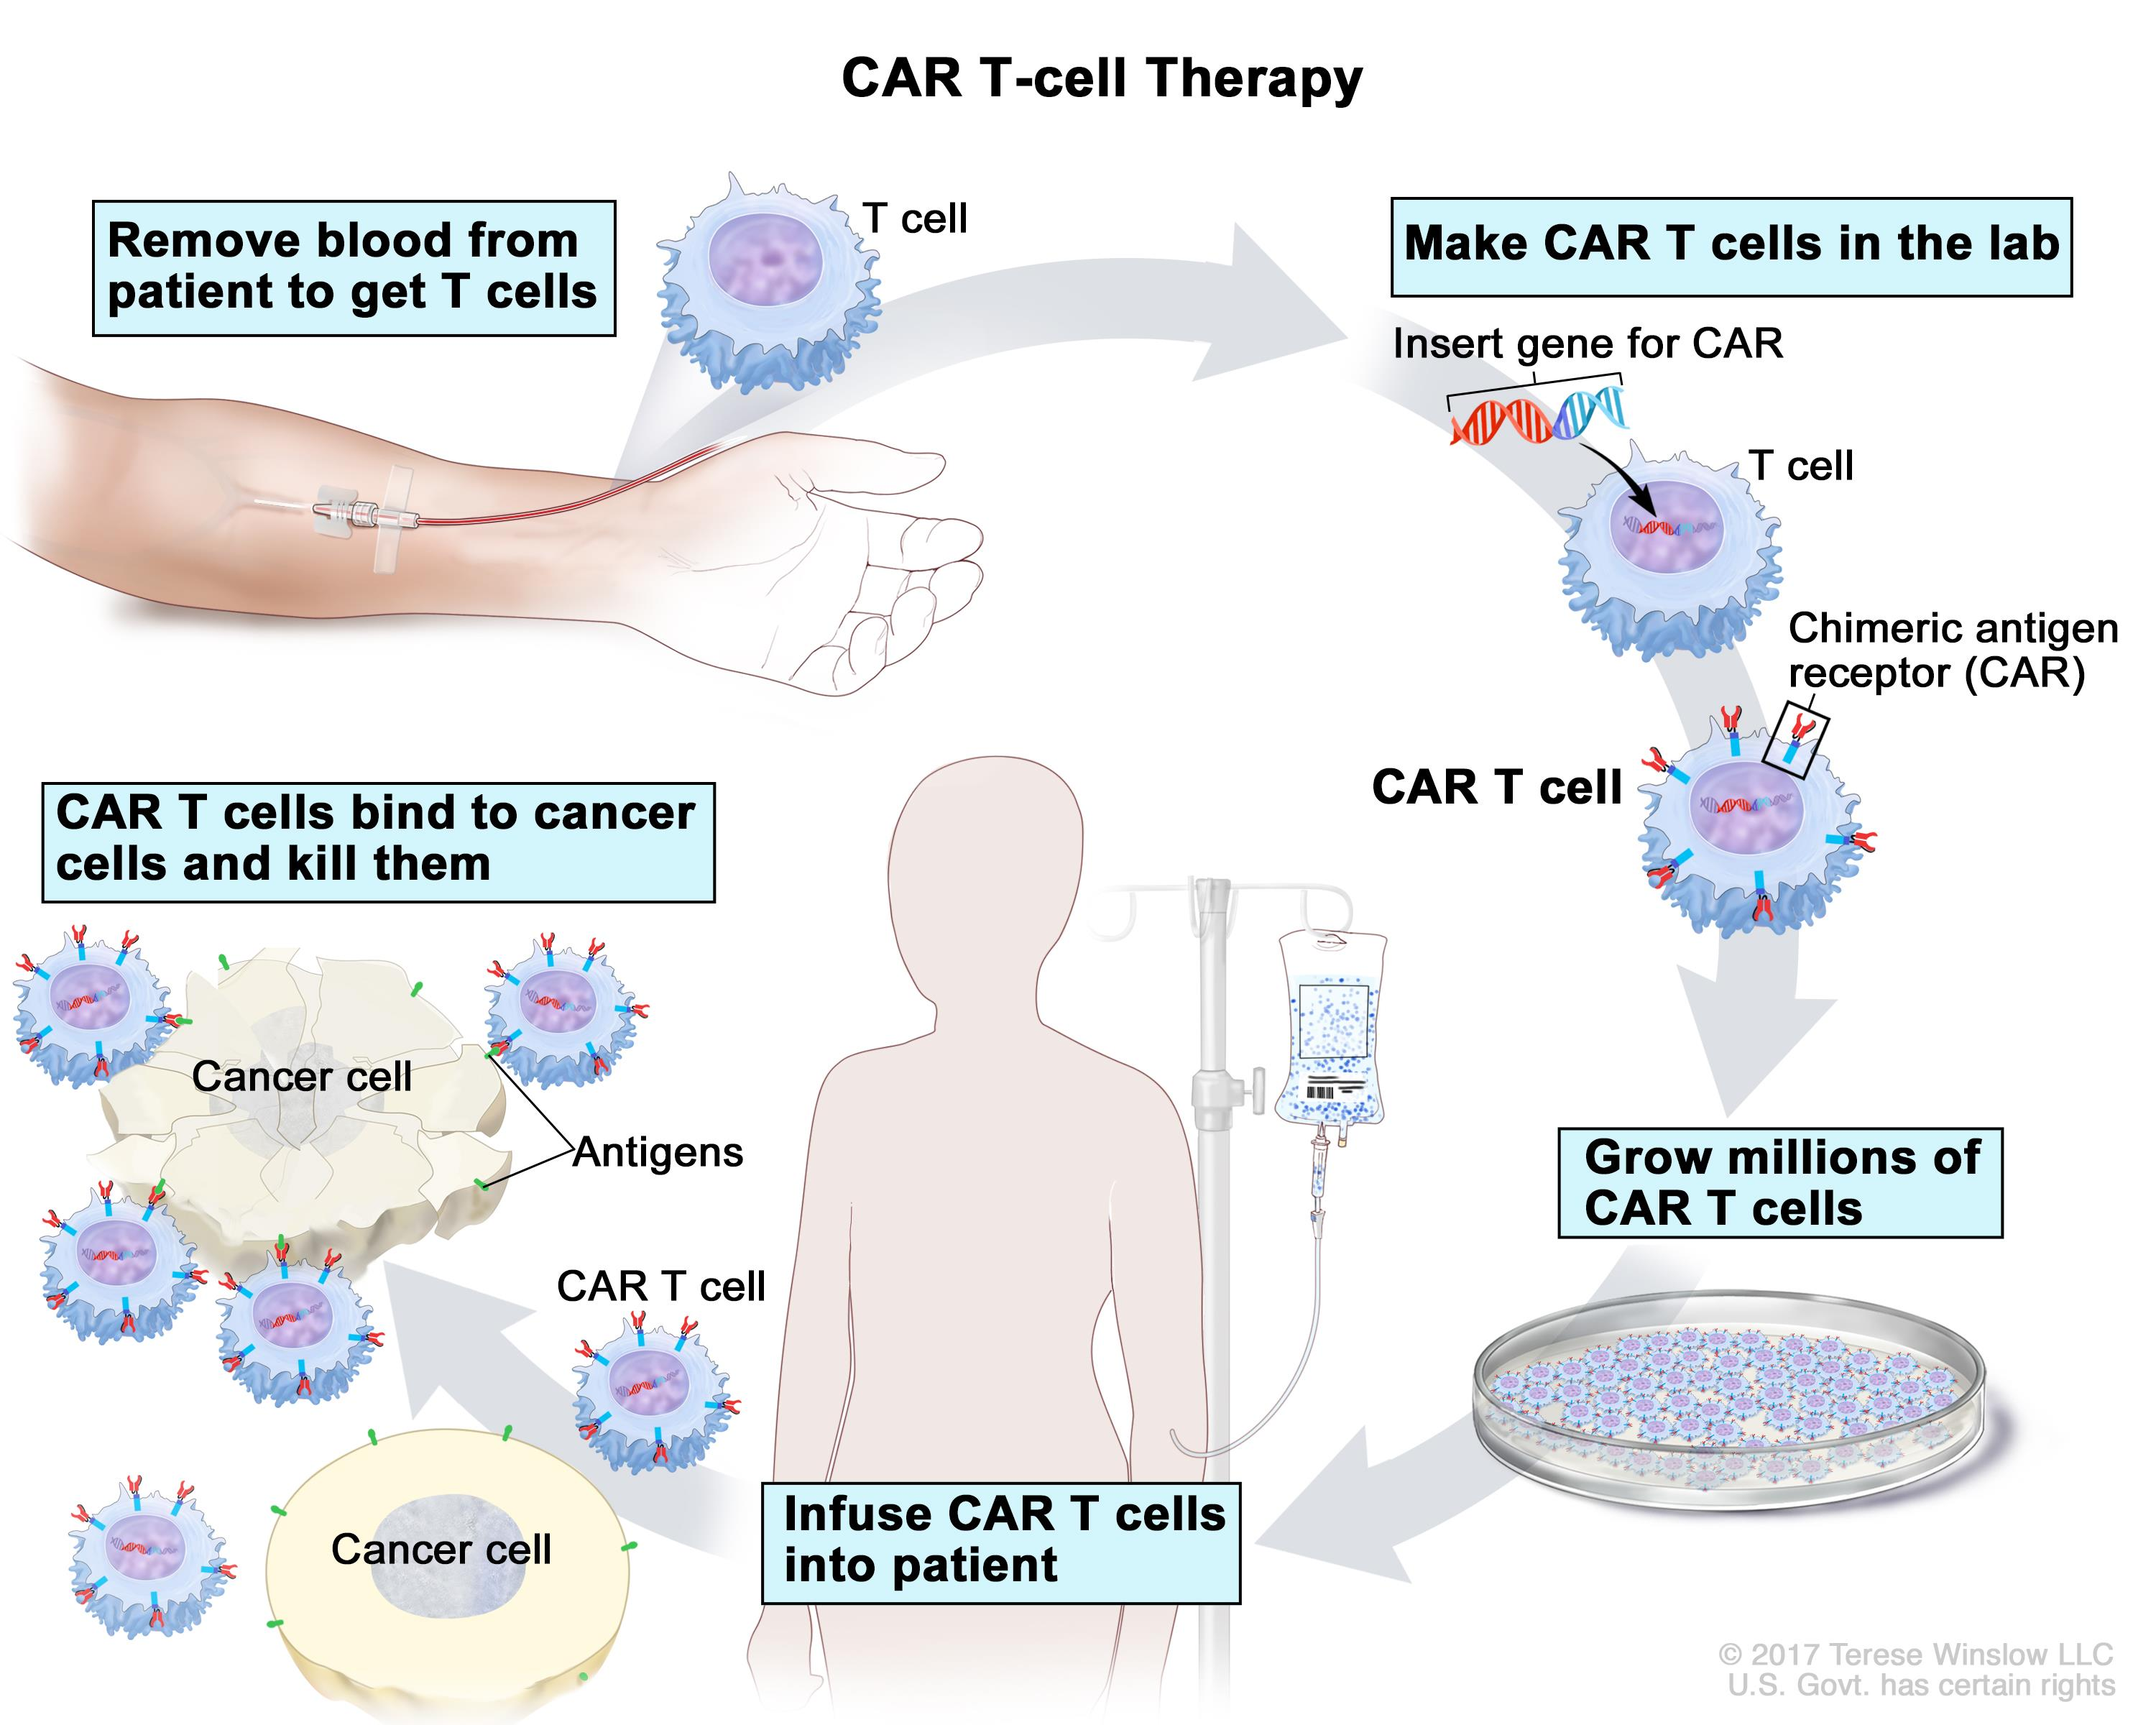 Childhood Acute Lymphoblastic Leukemia Treatment Pdqpatient Human White Blood Cell Diagram Cells Overview Stock Car T Therapy A Type Of In Which Patients Immune Are Changed The Laboratory So They Will Bind To Cancer